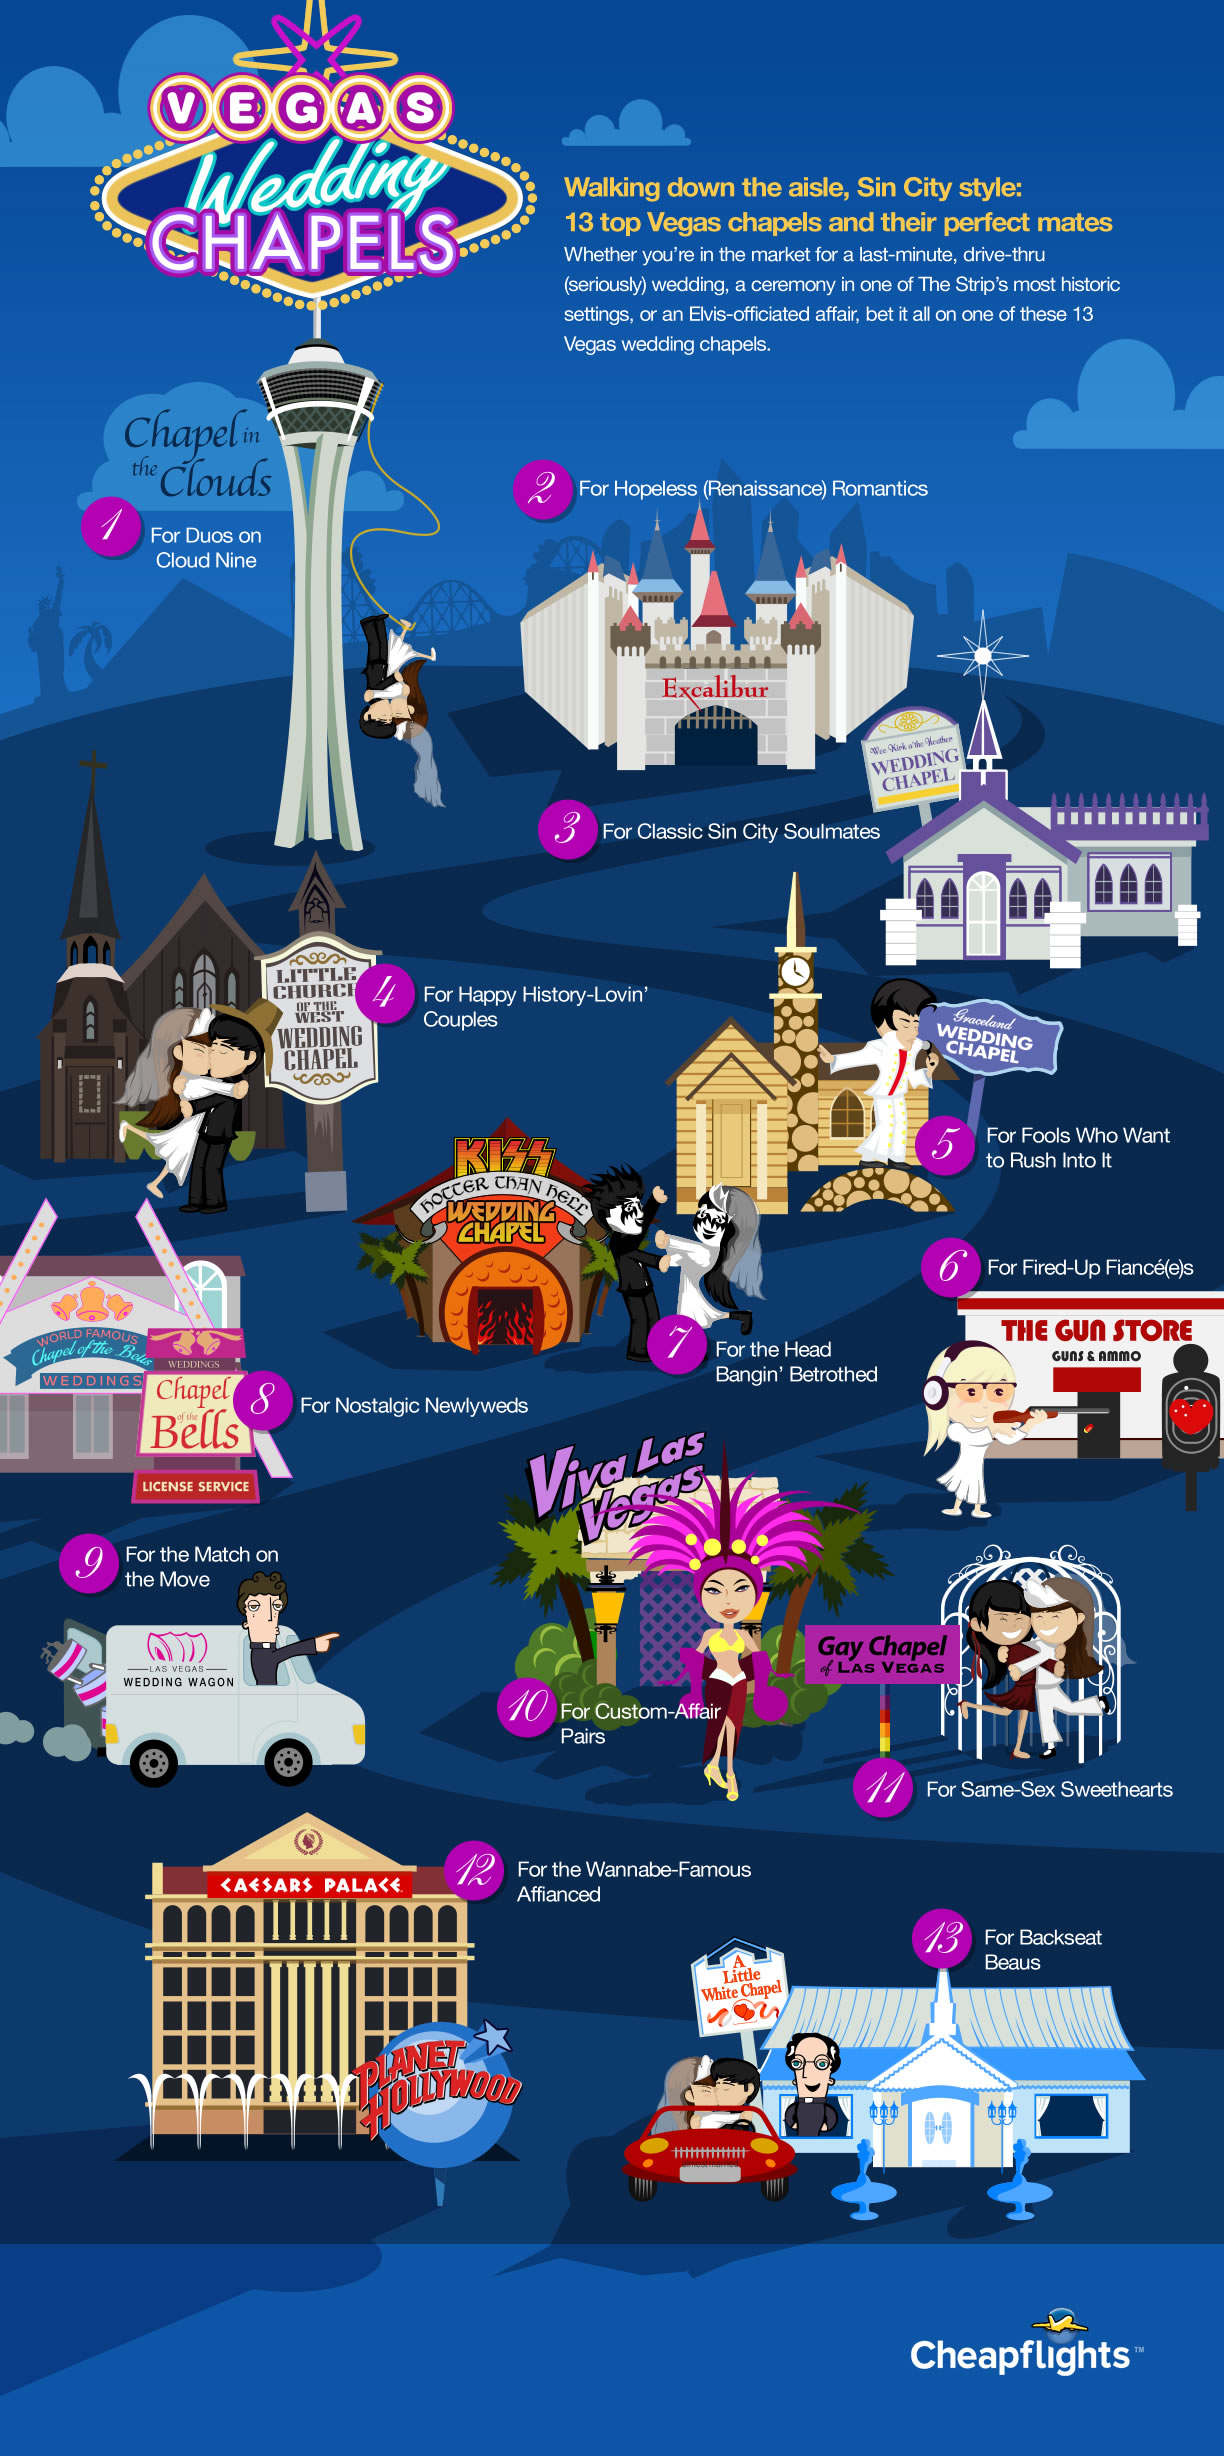 Walking down the aisle, Sin City style: 13 top Vegas chapels and their perfect mates [infographic]